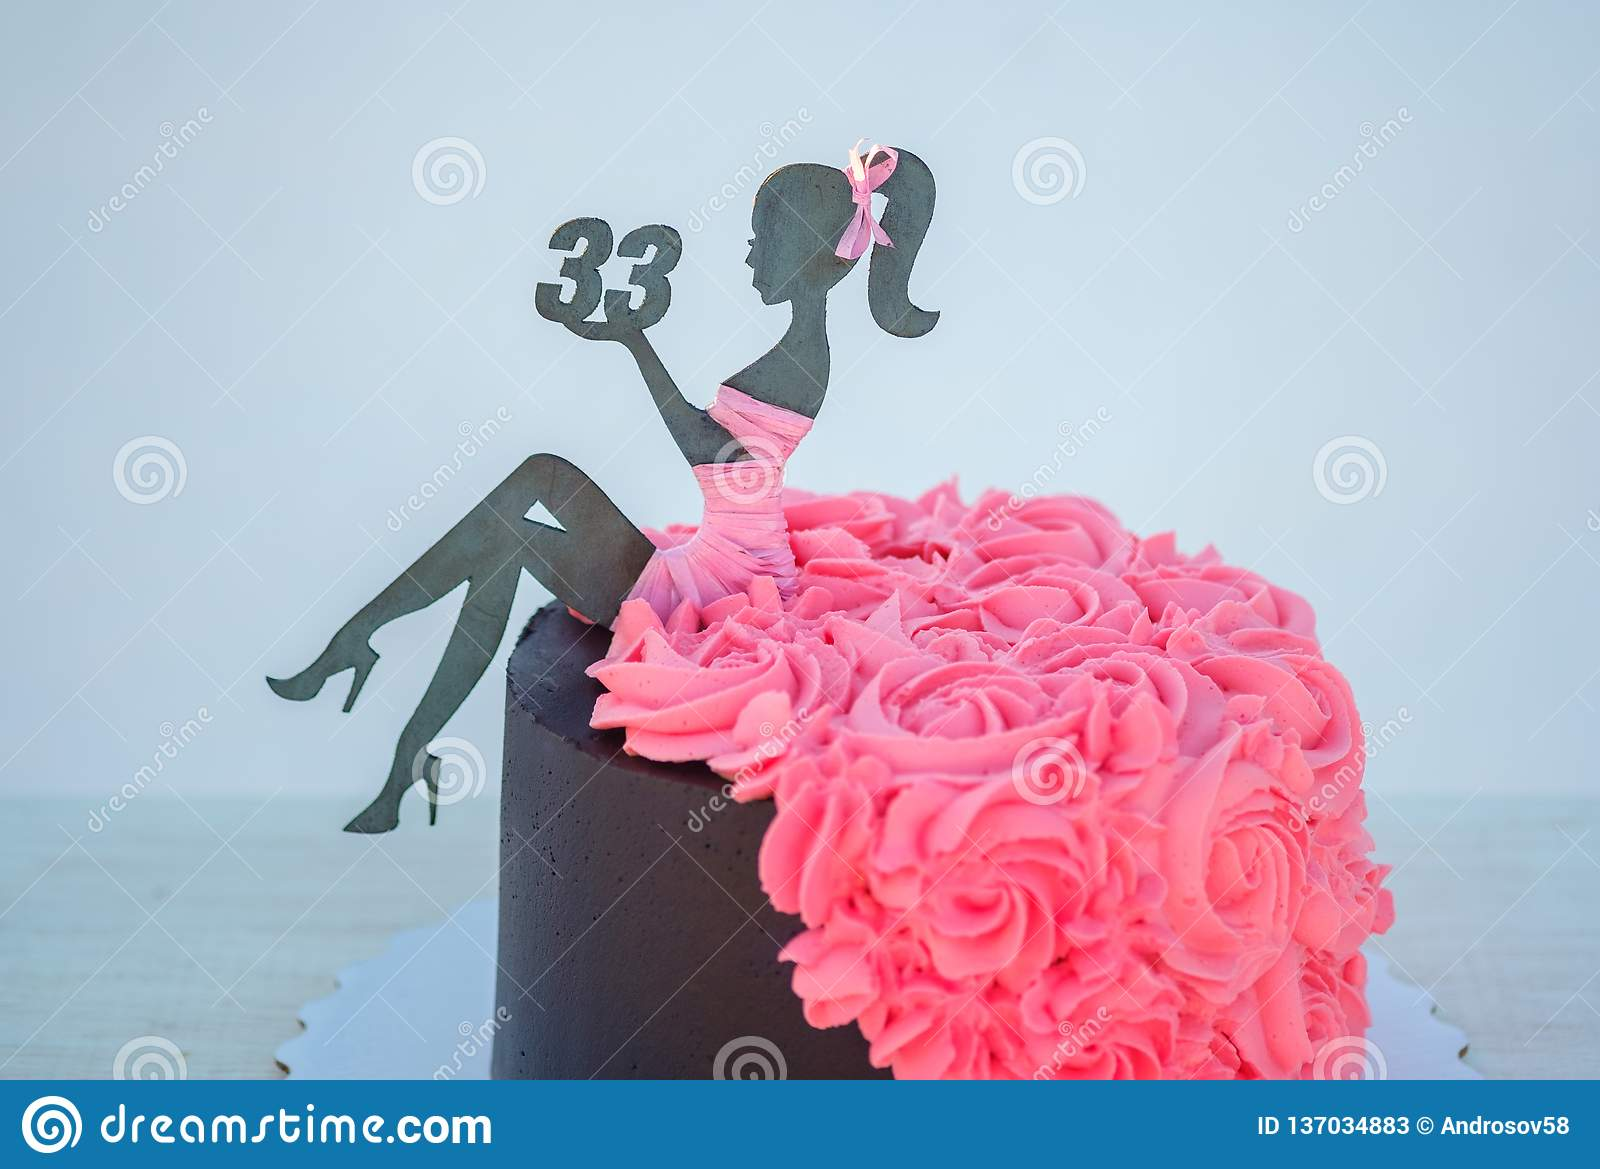 Excellent Beautiful Birthday Cake With A Figure Of A Woman And The Number Funny Birthday Cards Online Aeocydamsfinfo